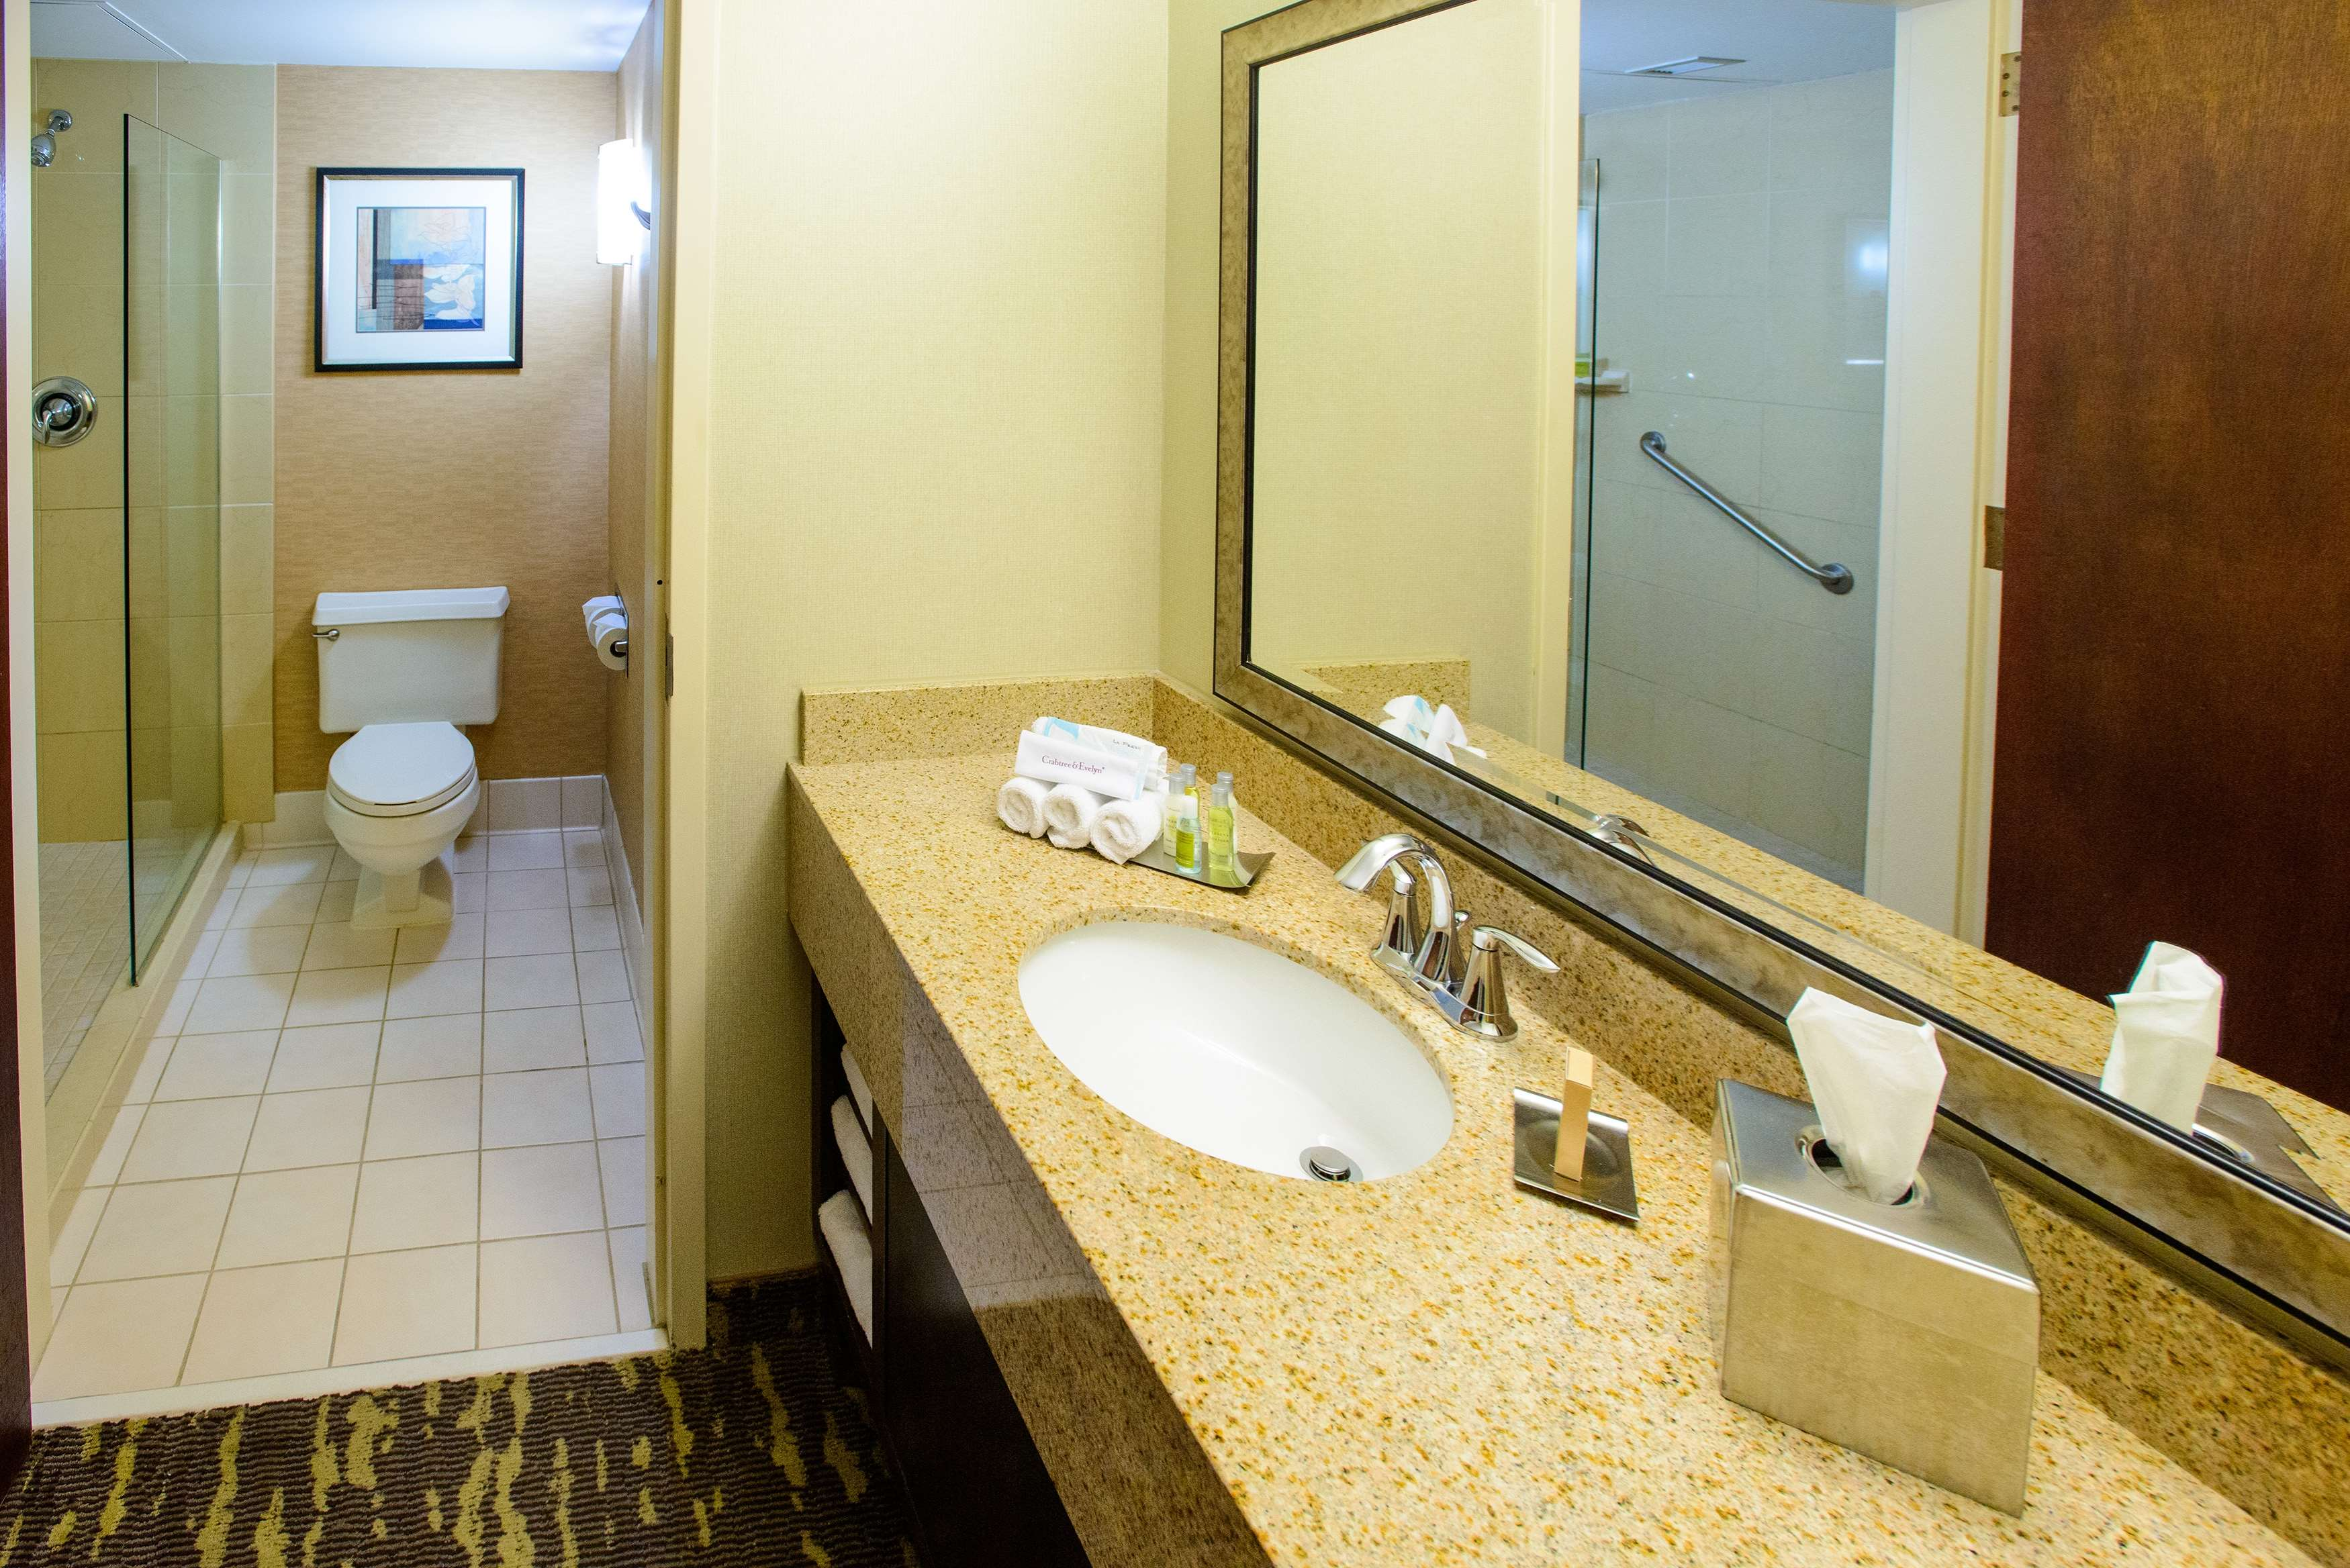 DoubleTree by Hilton Hotel Rochester - Mayo Clinic Area image 13